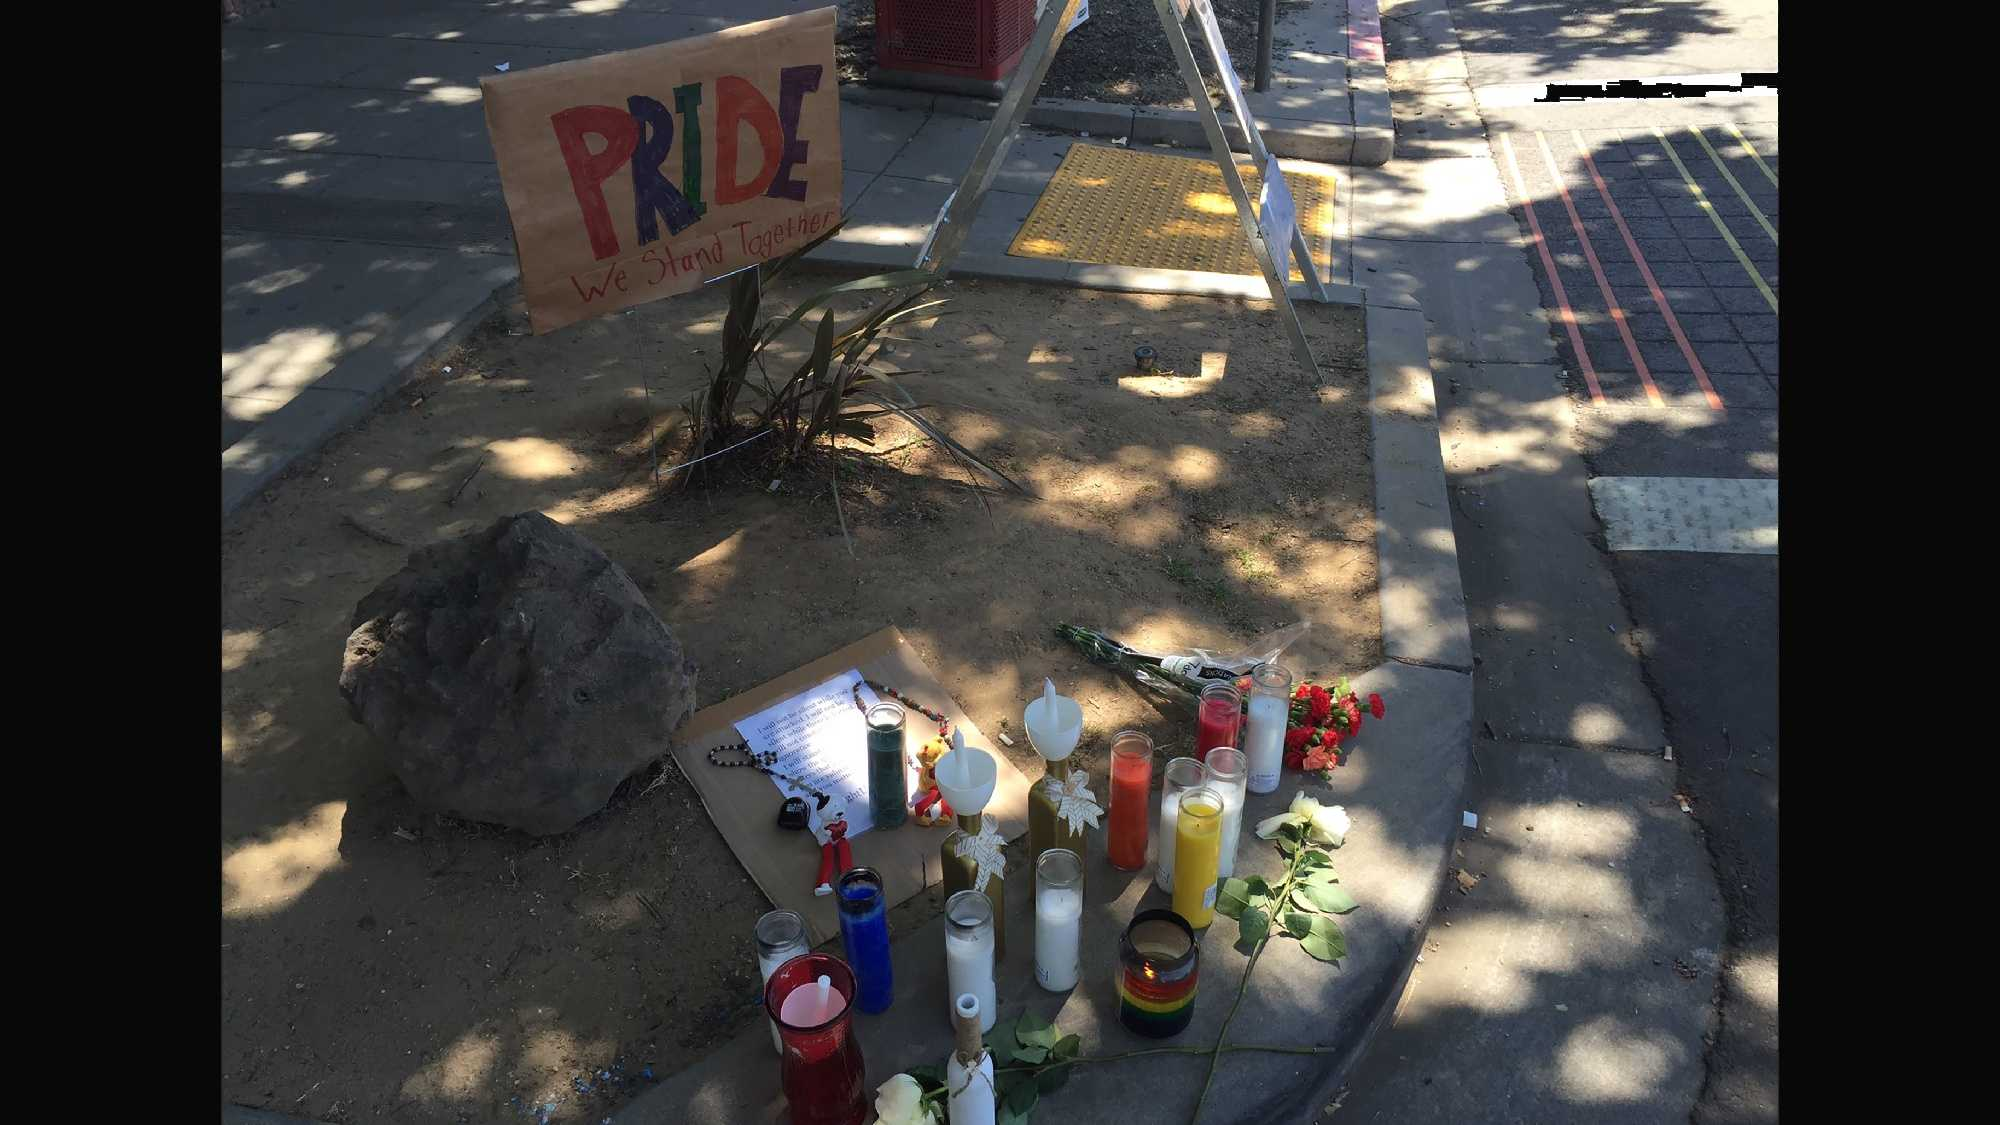 """""""Pride we stand together"""" written at the growing memorial at 20th and K in midtown Sacramento."""